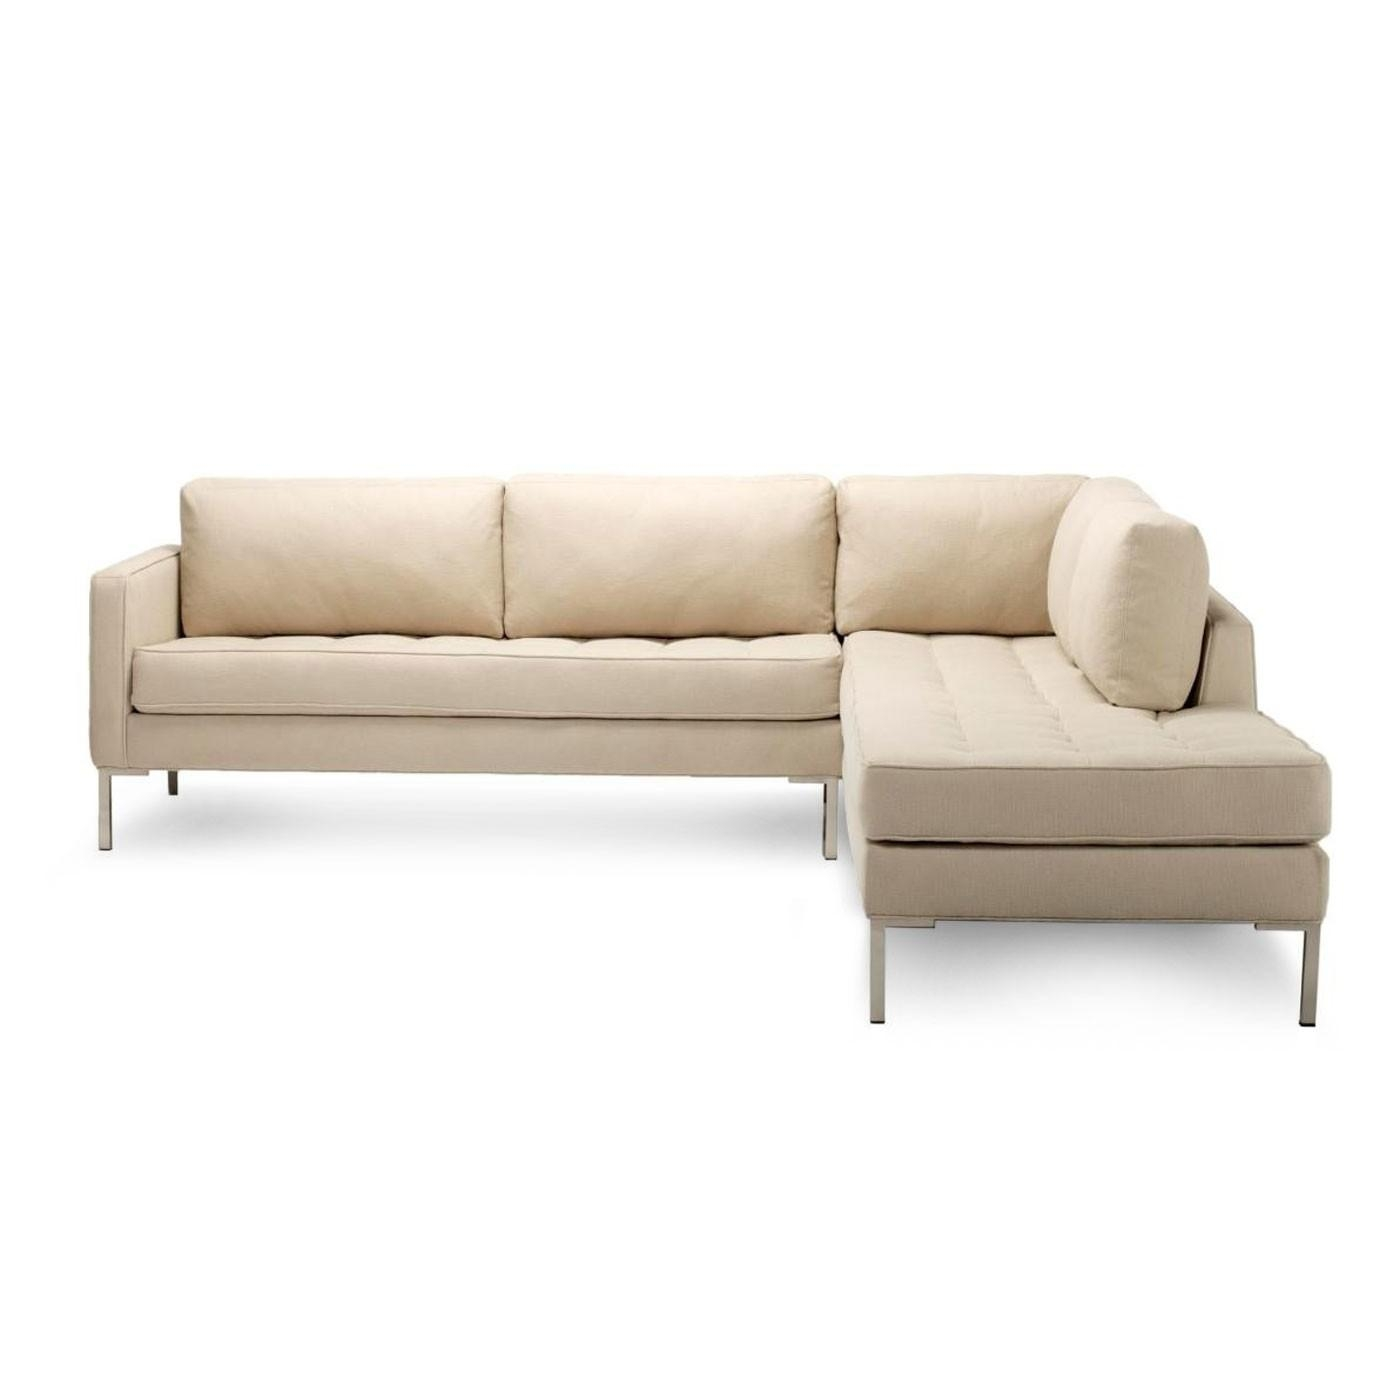 Furniture: Armless Sofa | Armless Sofa Bed | Armless Settee With Small Armless Sofa (View 6 of 20)